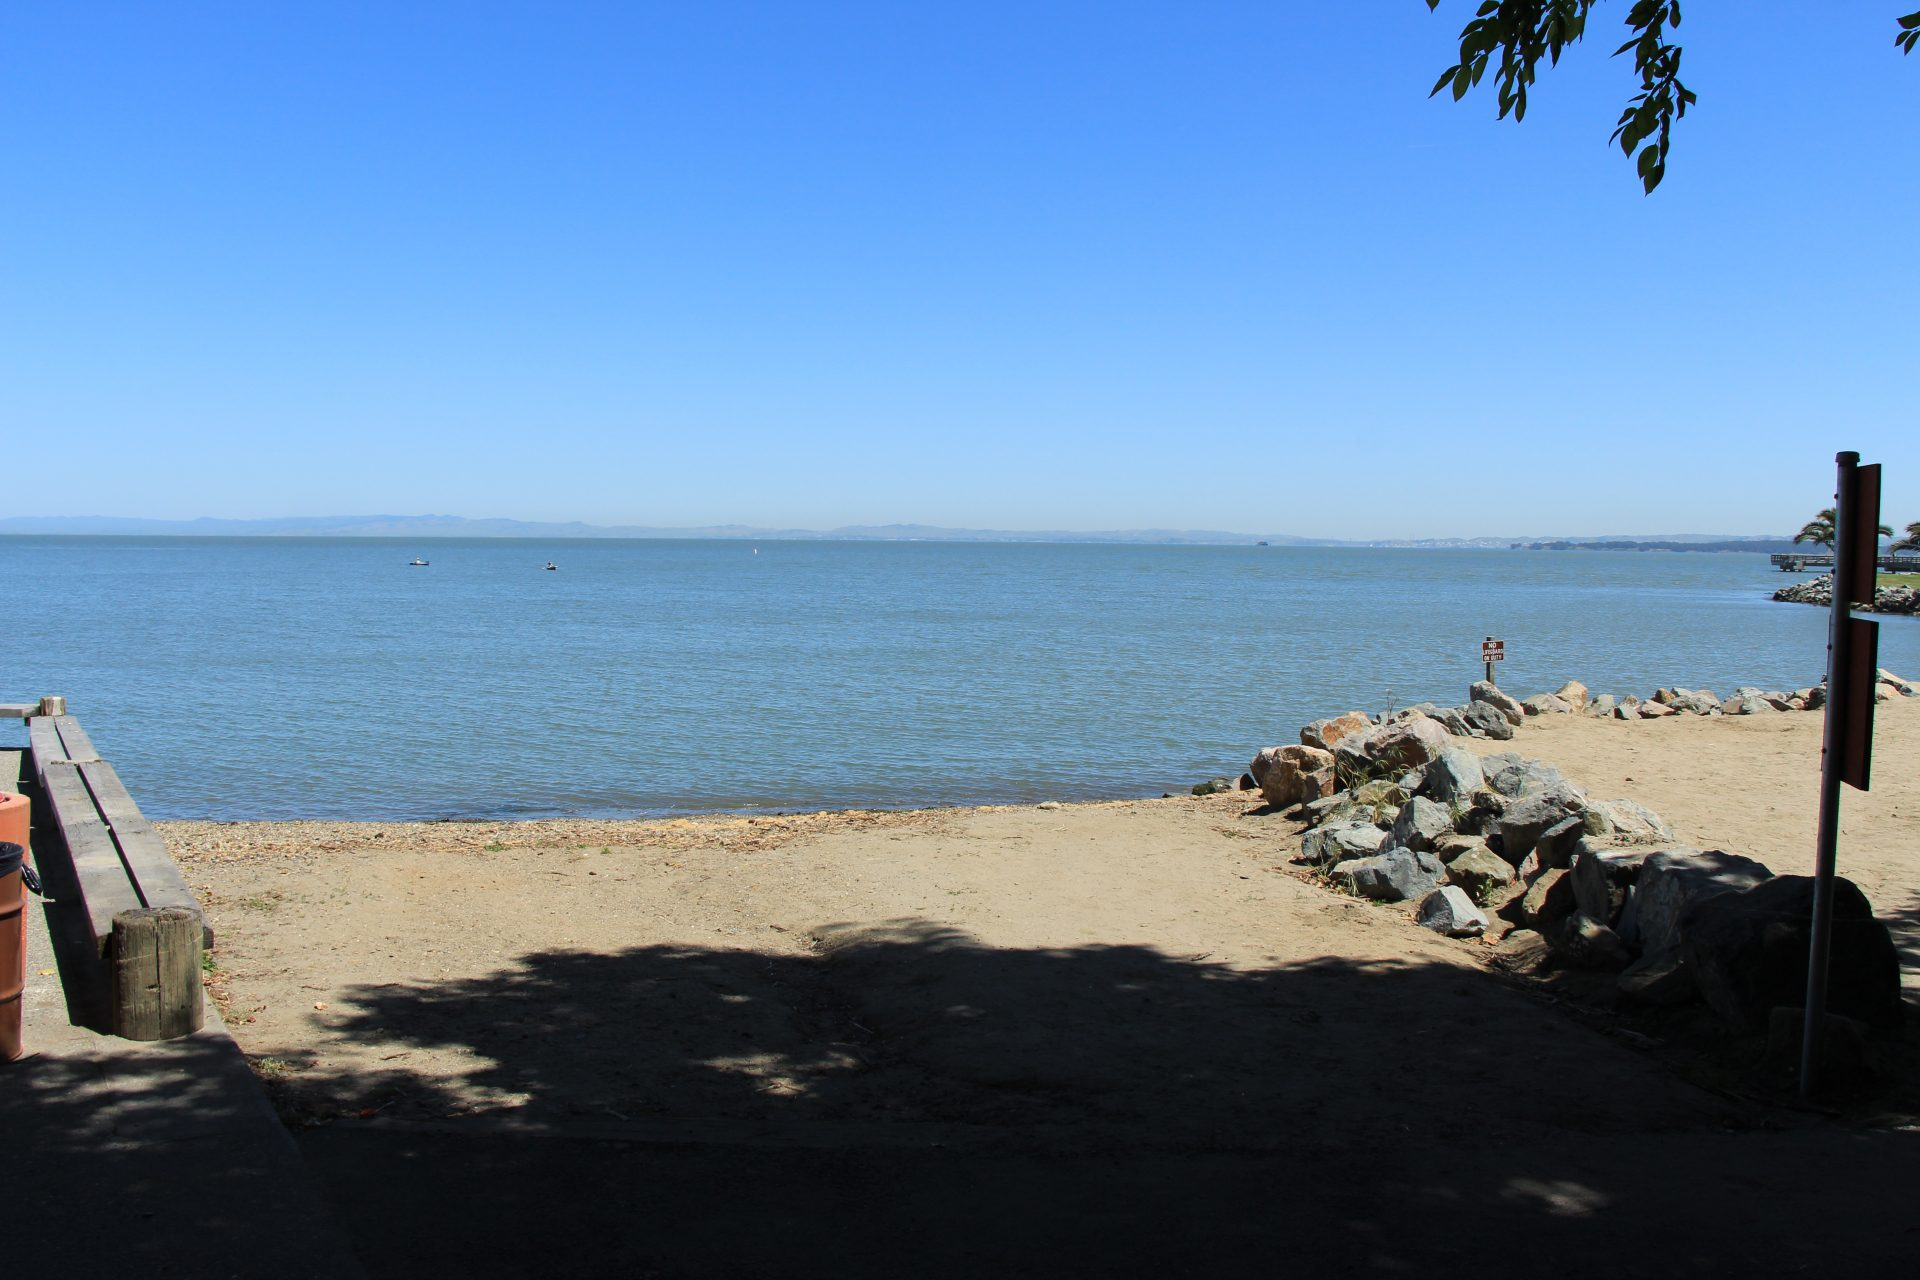 flat sandy beach with concrete wall on let and riprap on right